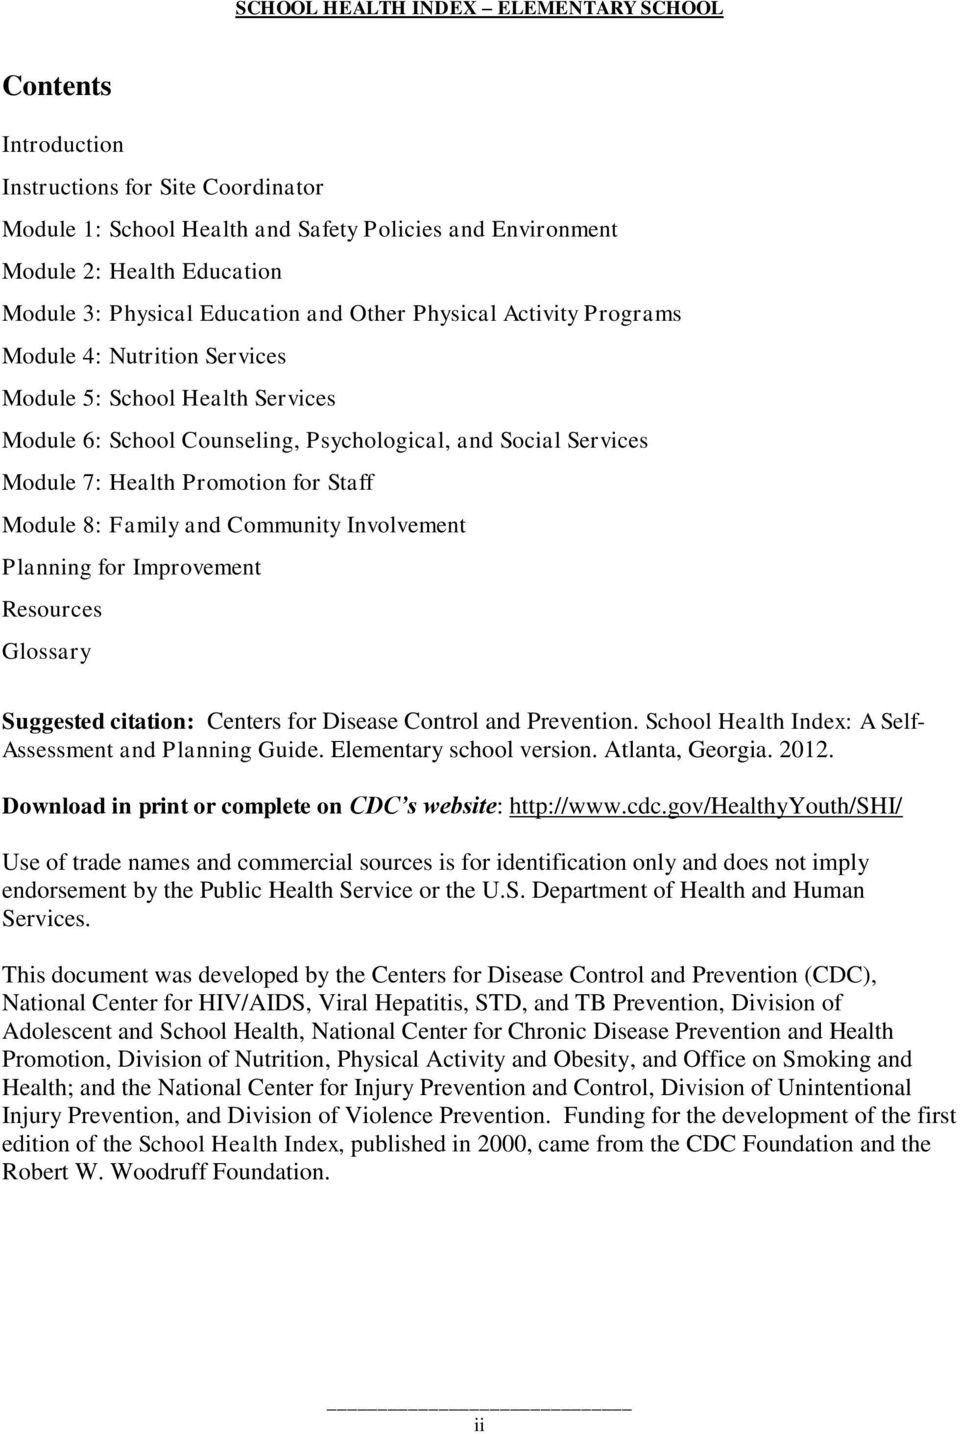 Community Involvement Planning for Improvement Resources Glossary Suggested citation: Centers for Disease Control and Prevention. School Health Index: A Self- Assessment and Planning Guide.